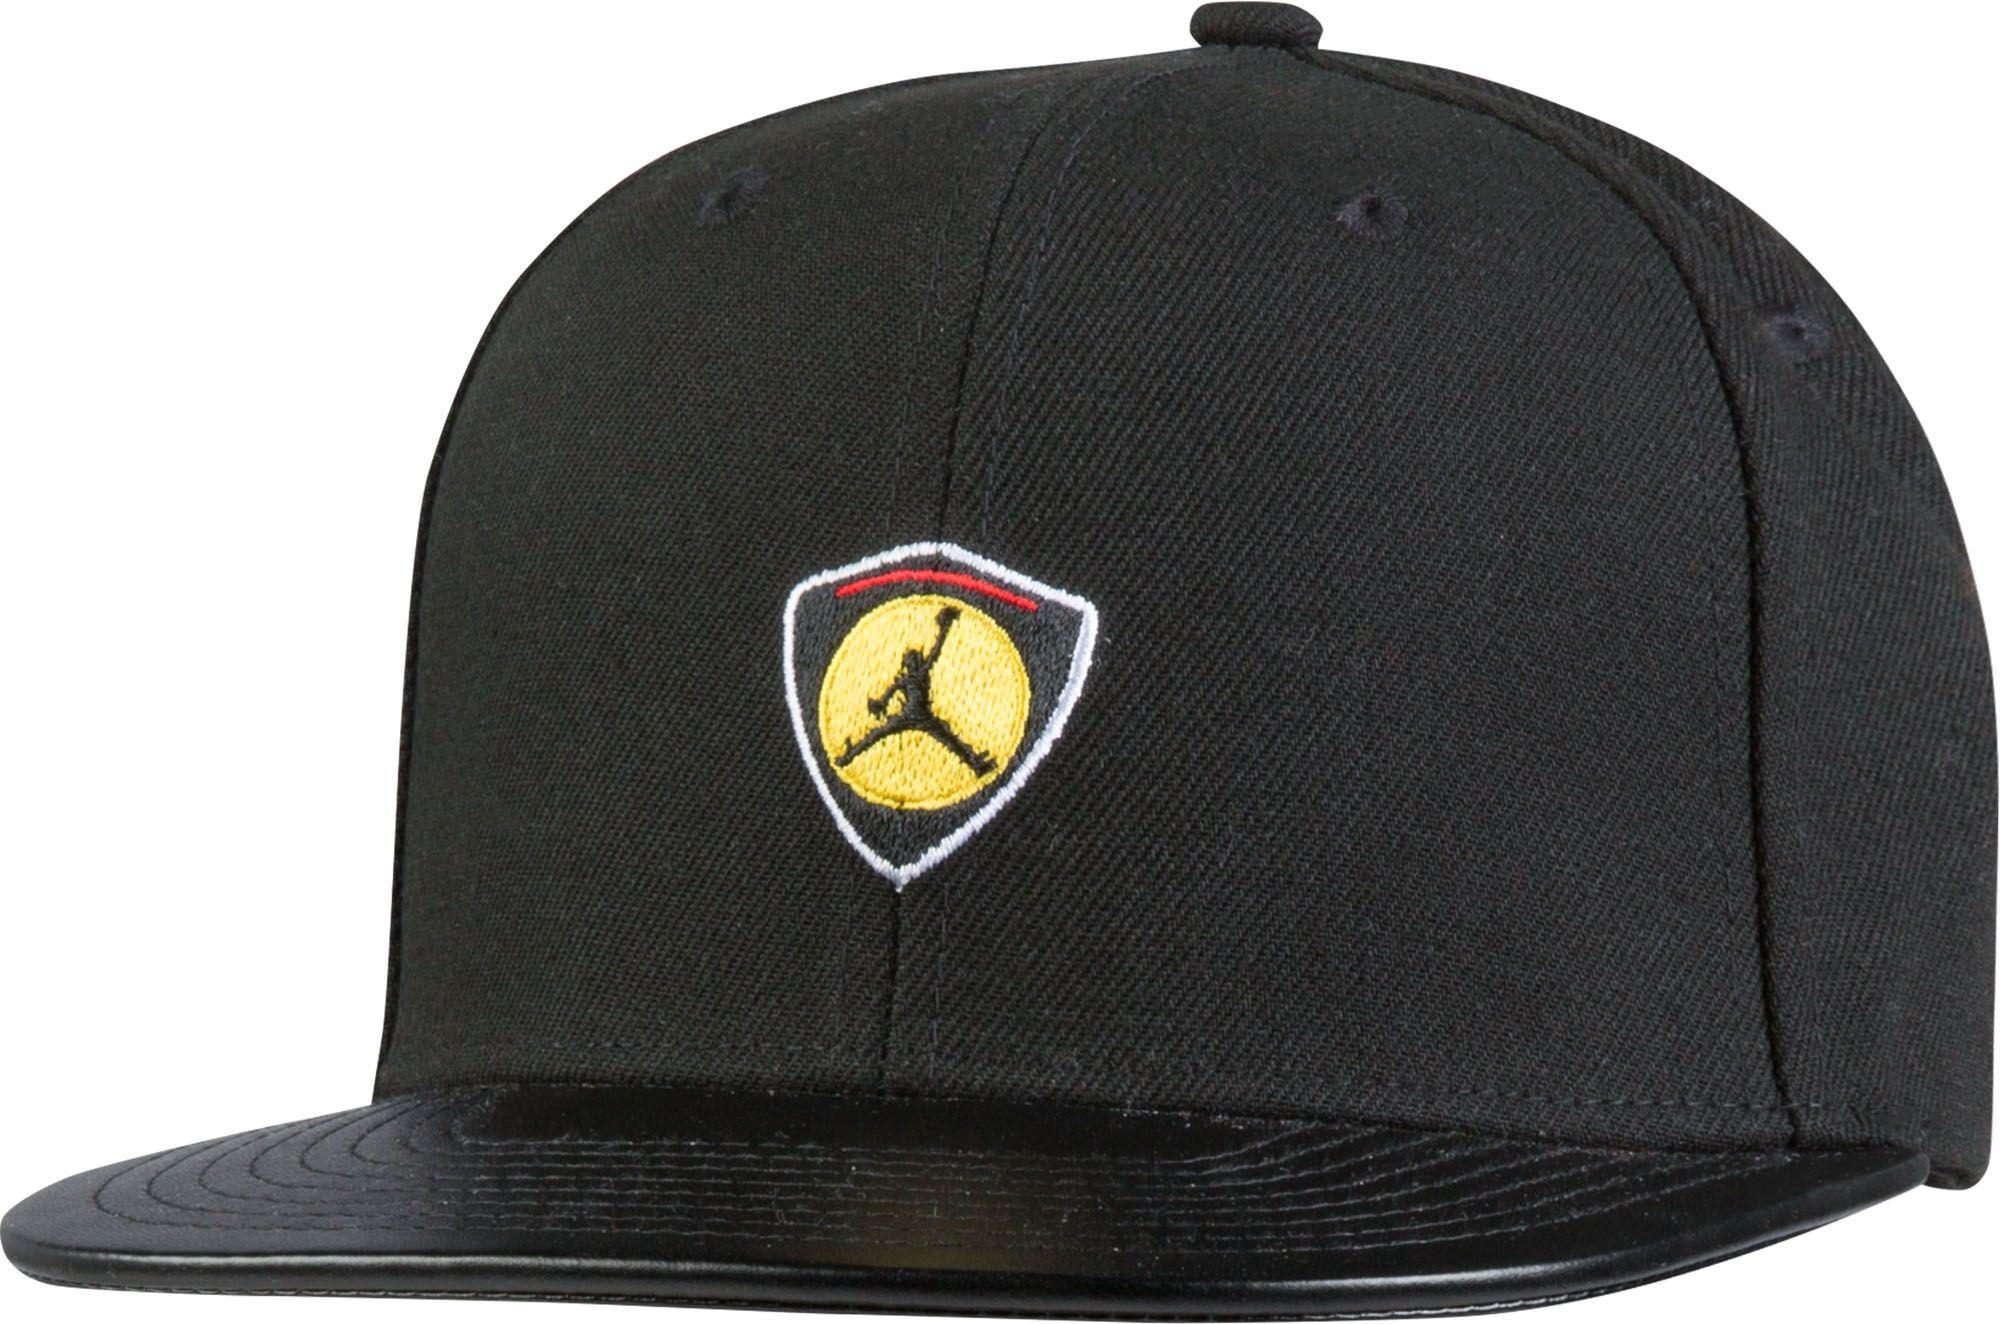 8a16fe9f3343bc ... best price lyst nike oys retro 14 snapback hat in black for men 2a377  321d8